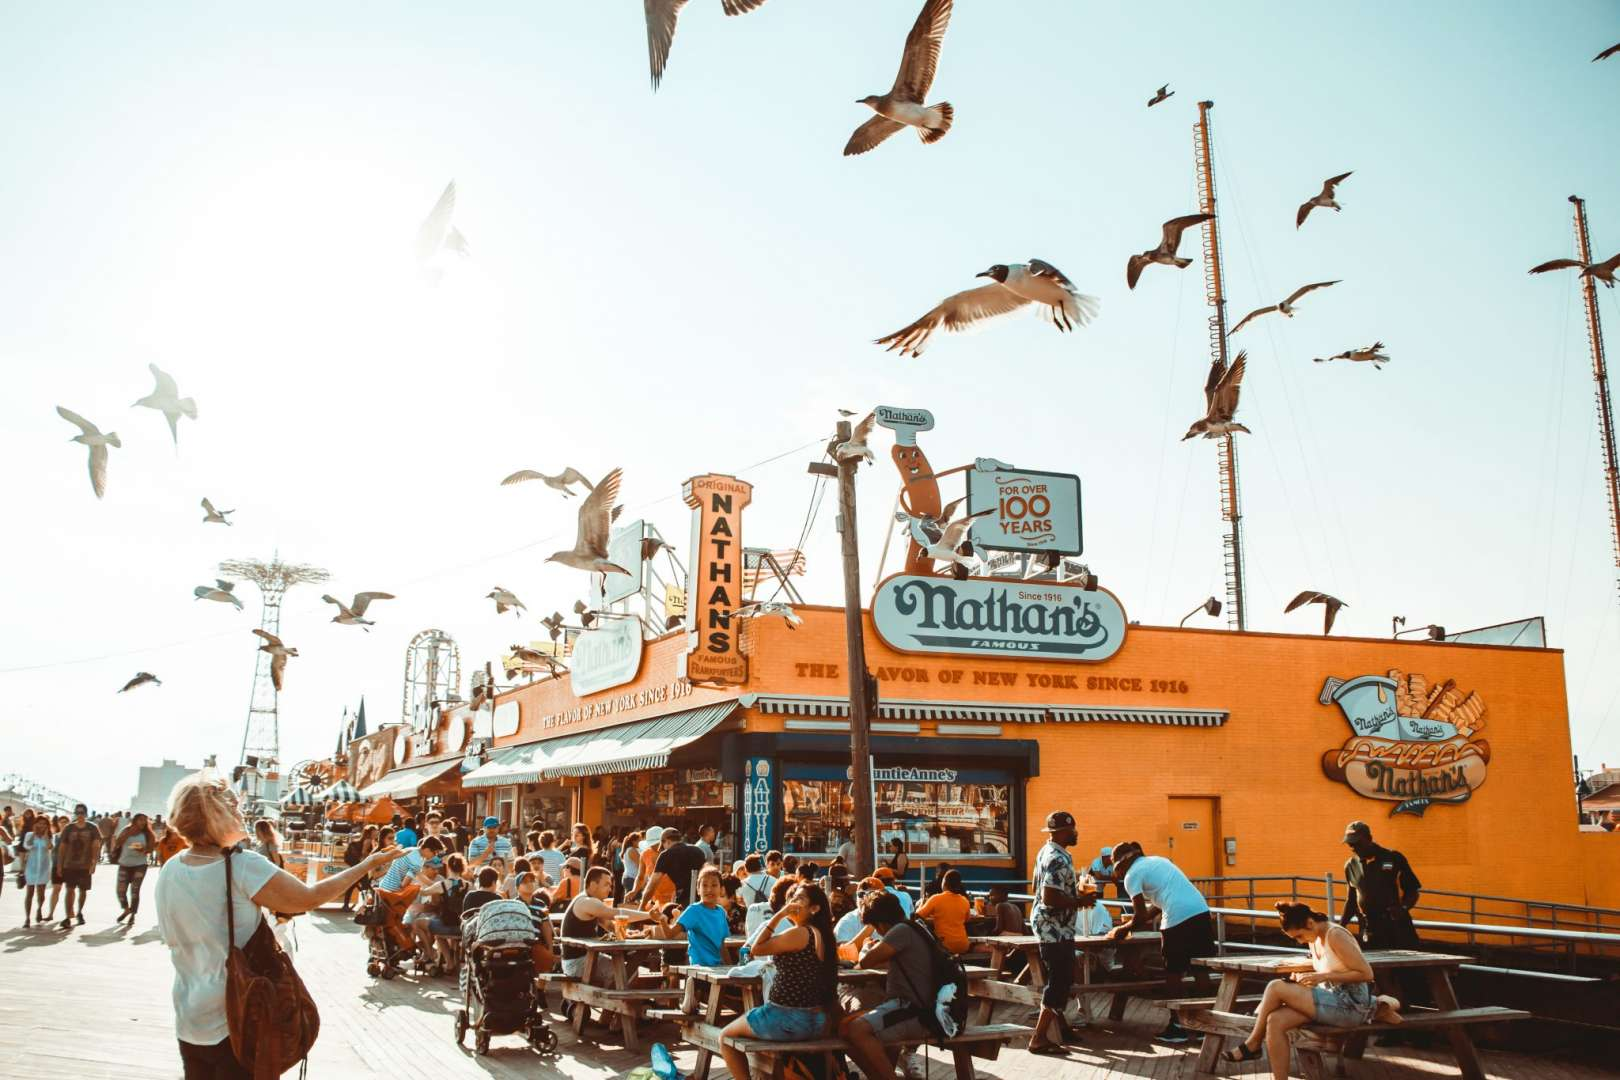 Seagulls Flying Near and American Diner